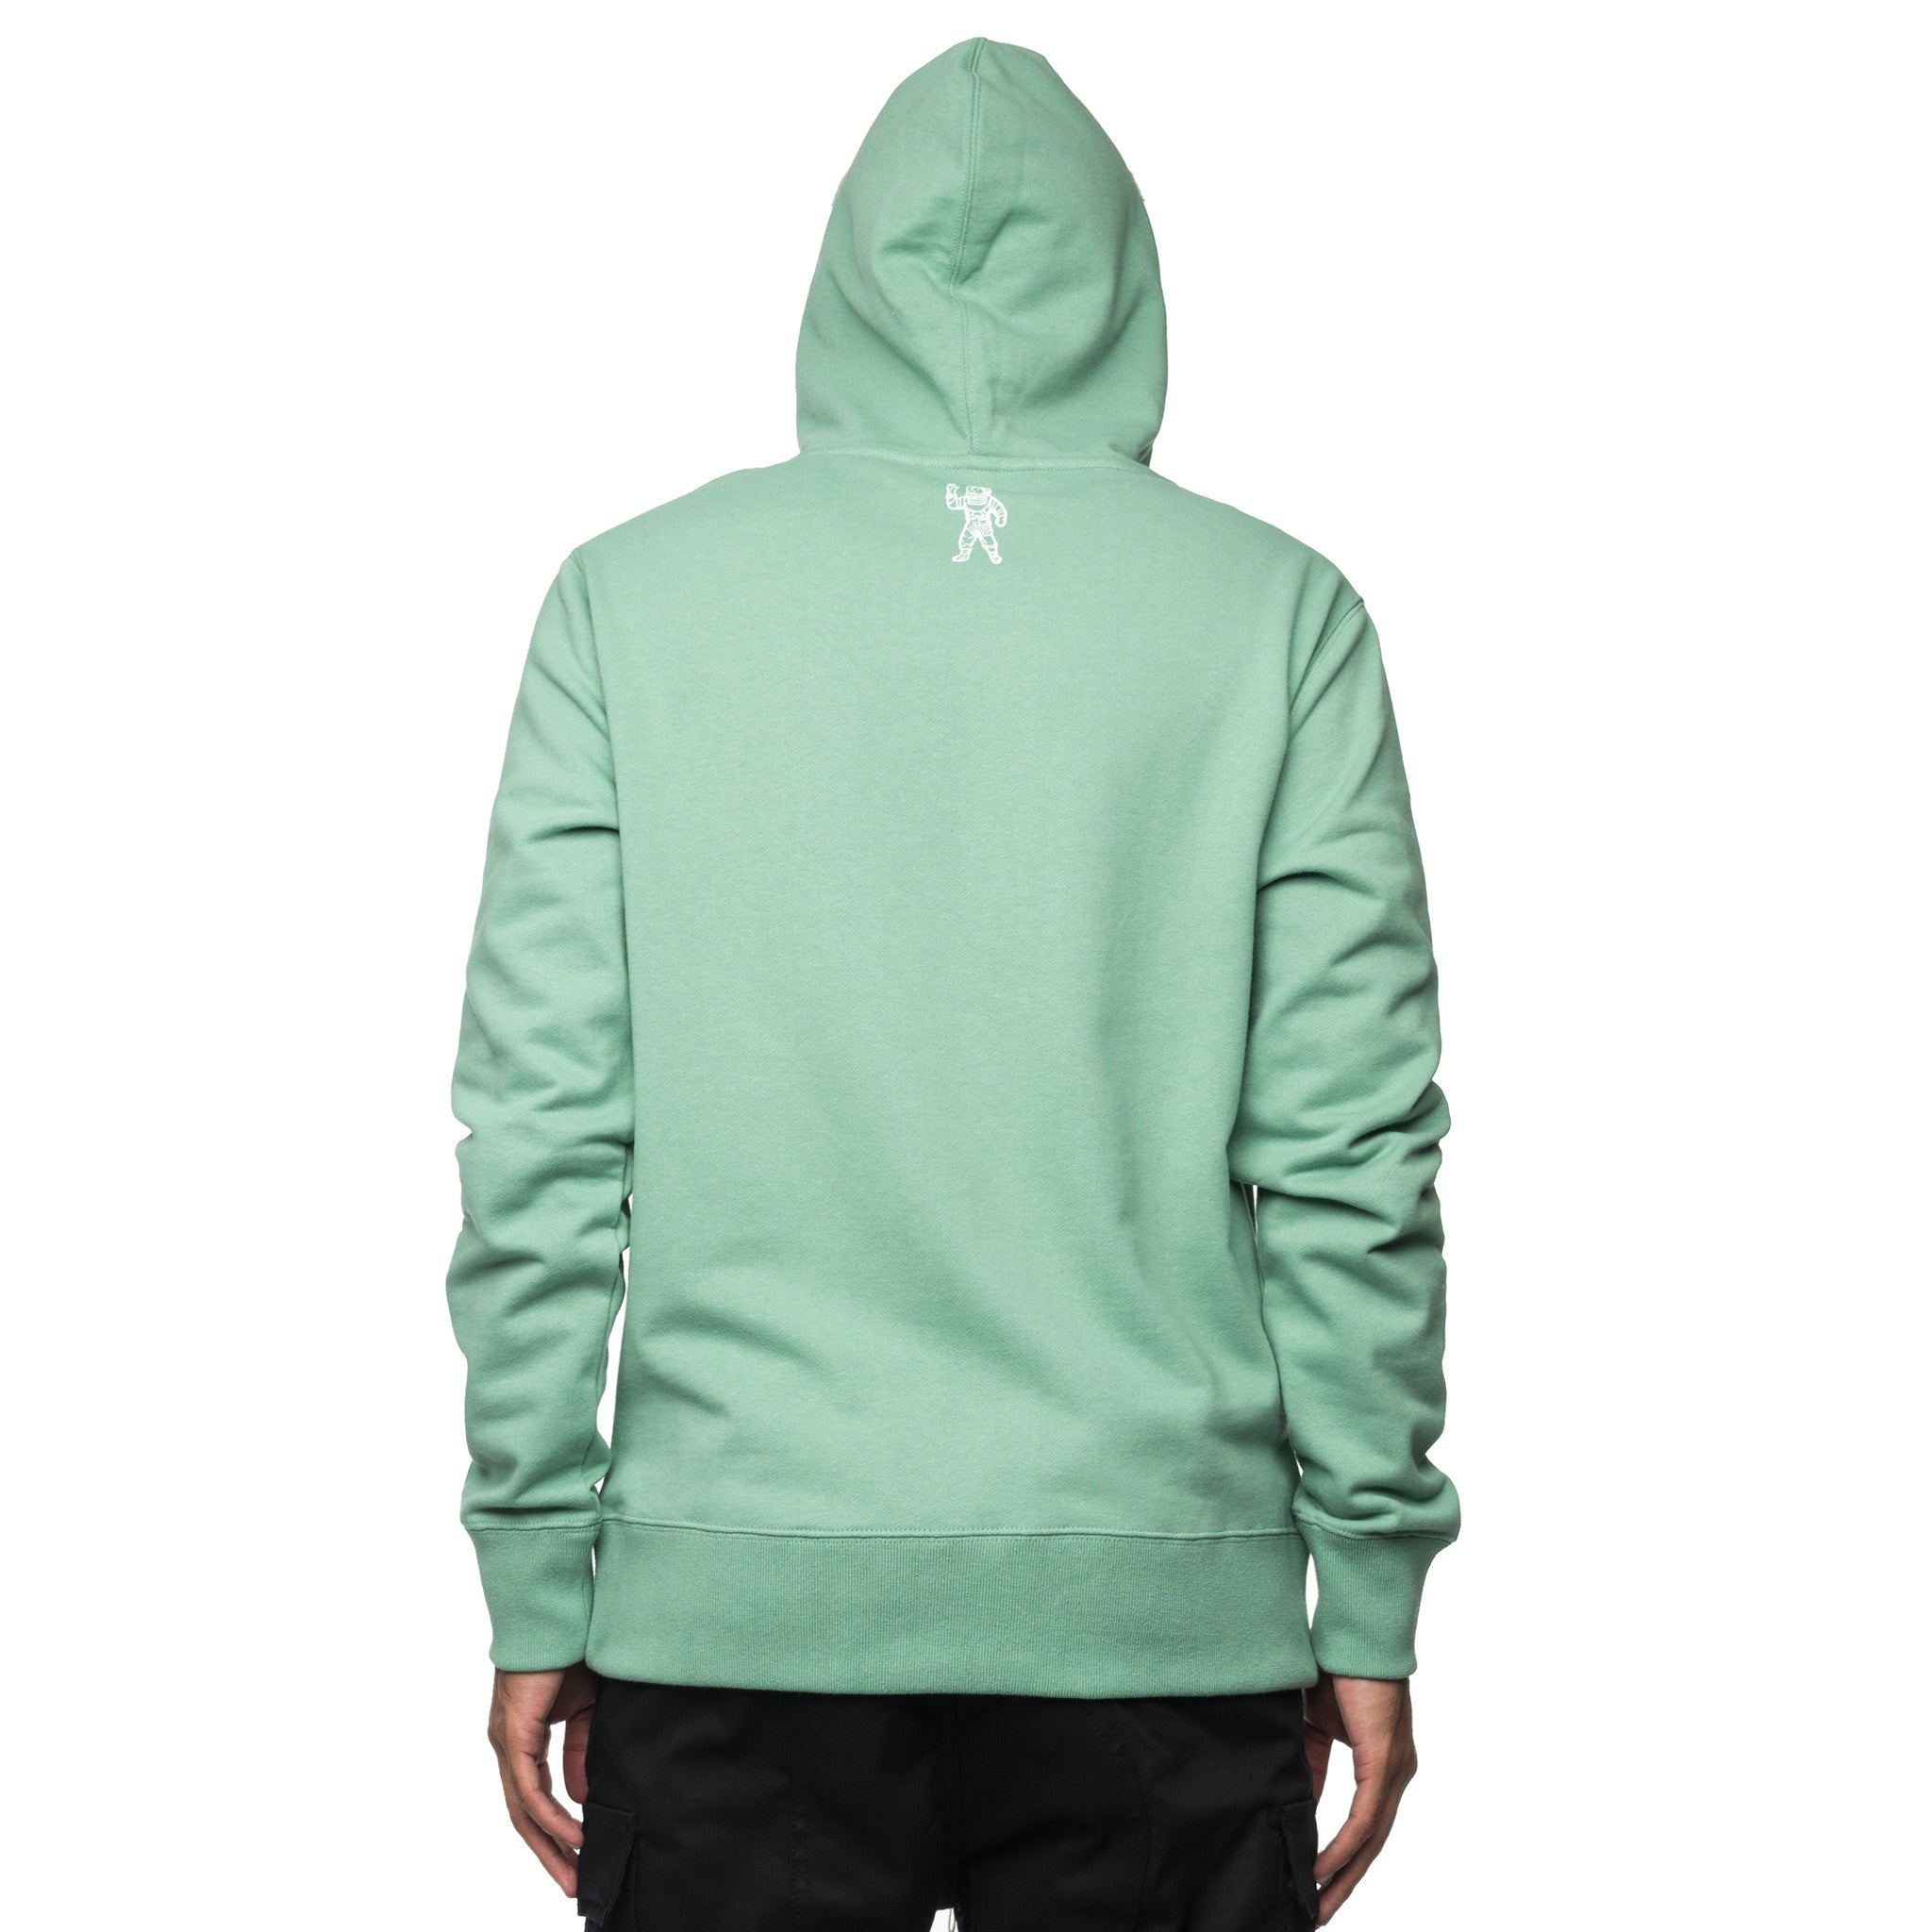 BB Arch Hoodie